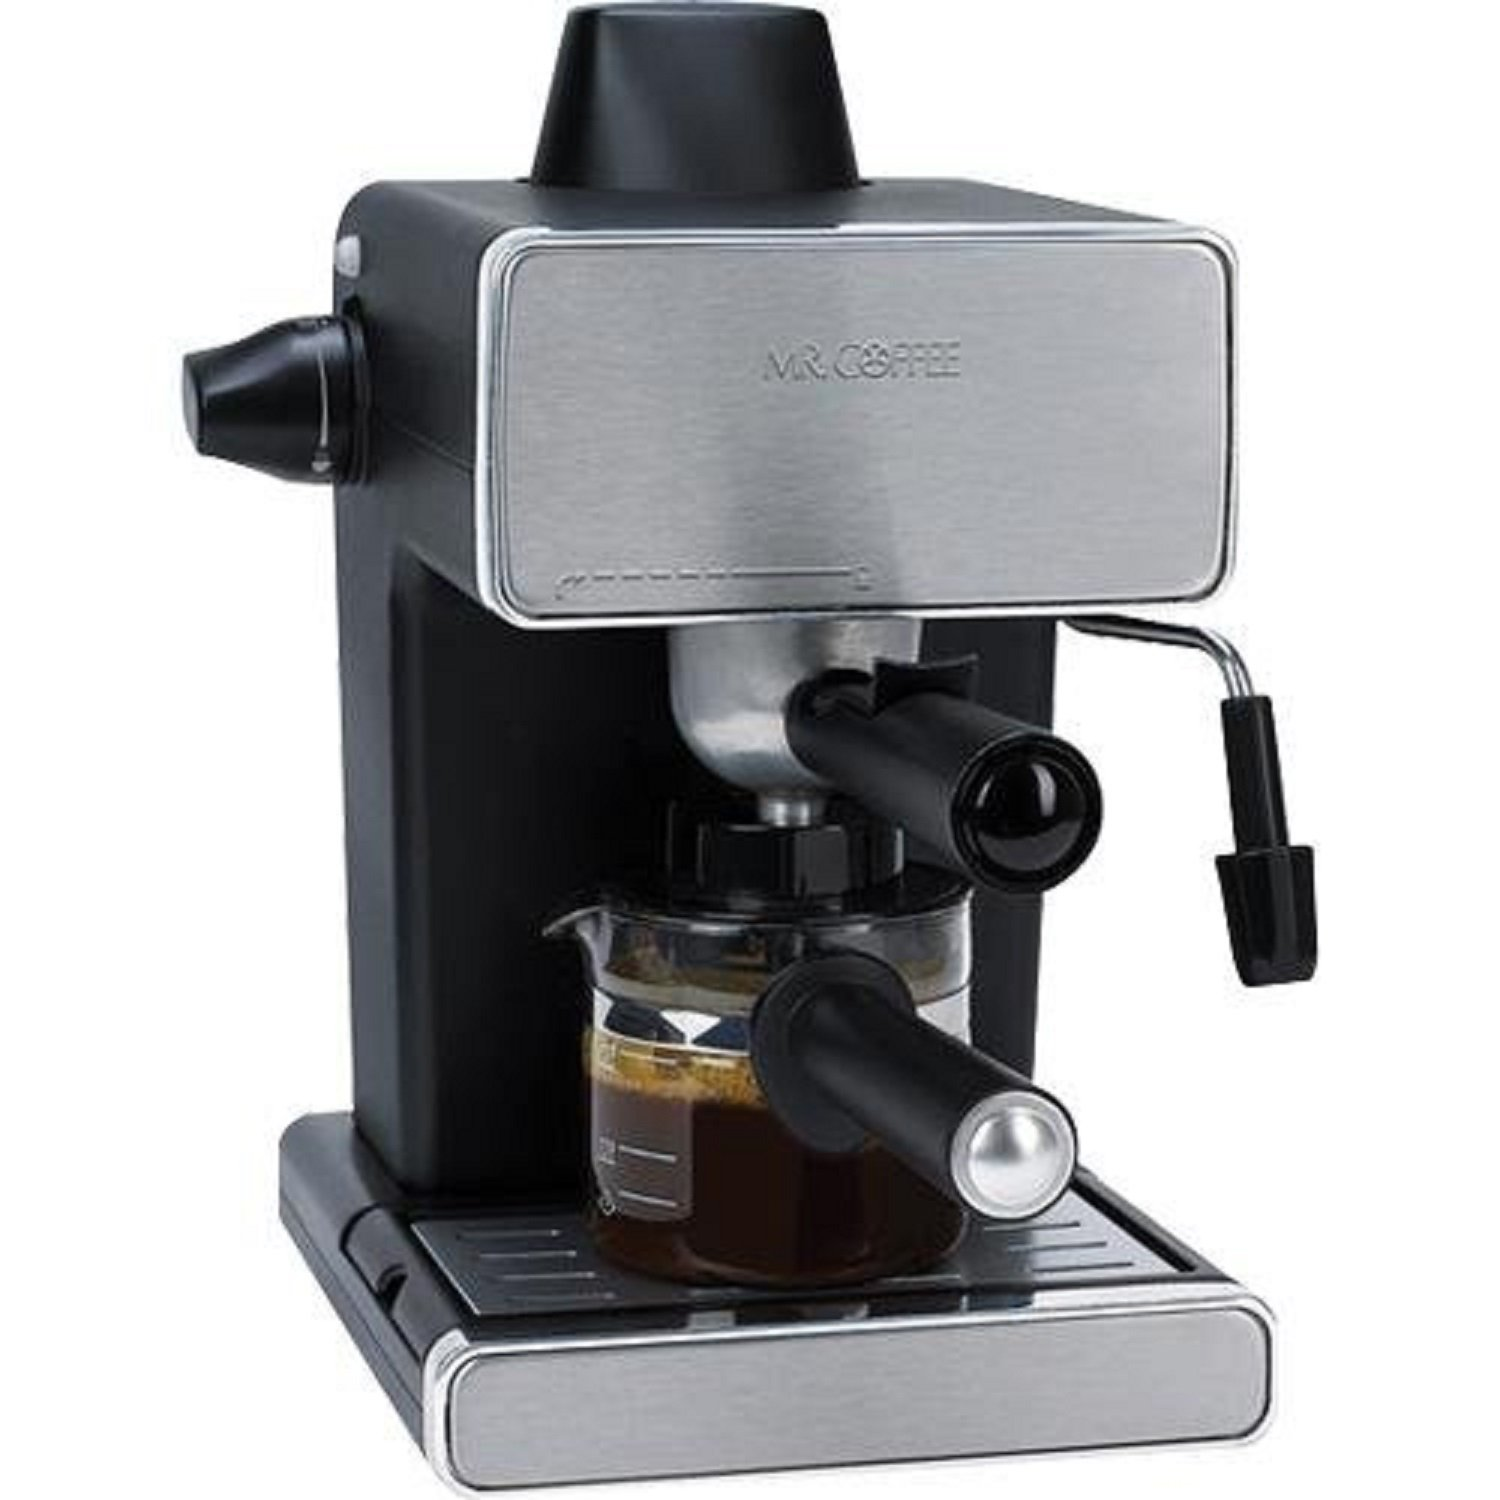 Bvmc-ecm260 Espresso by Mr. Coffee